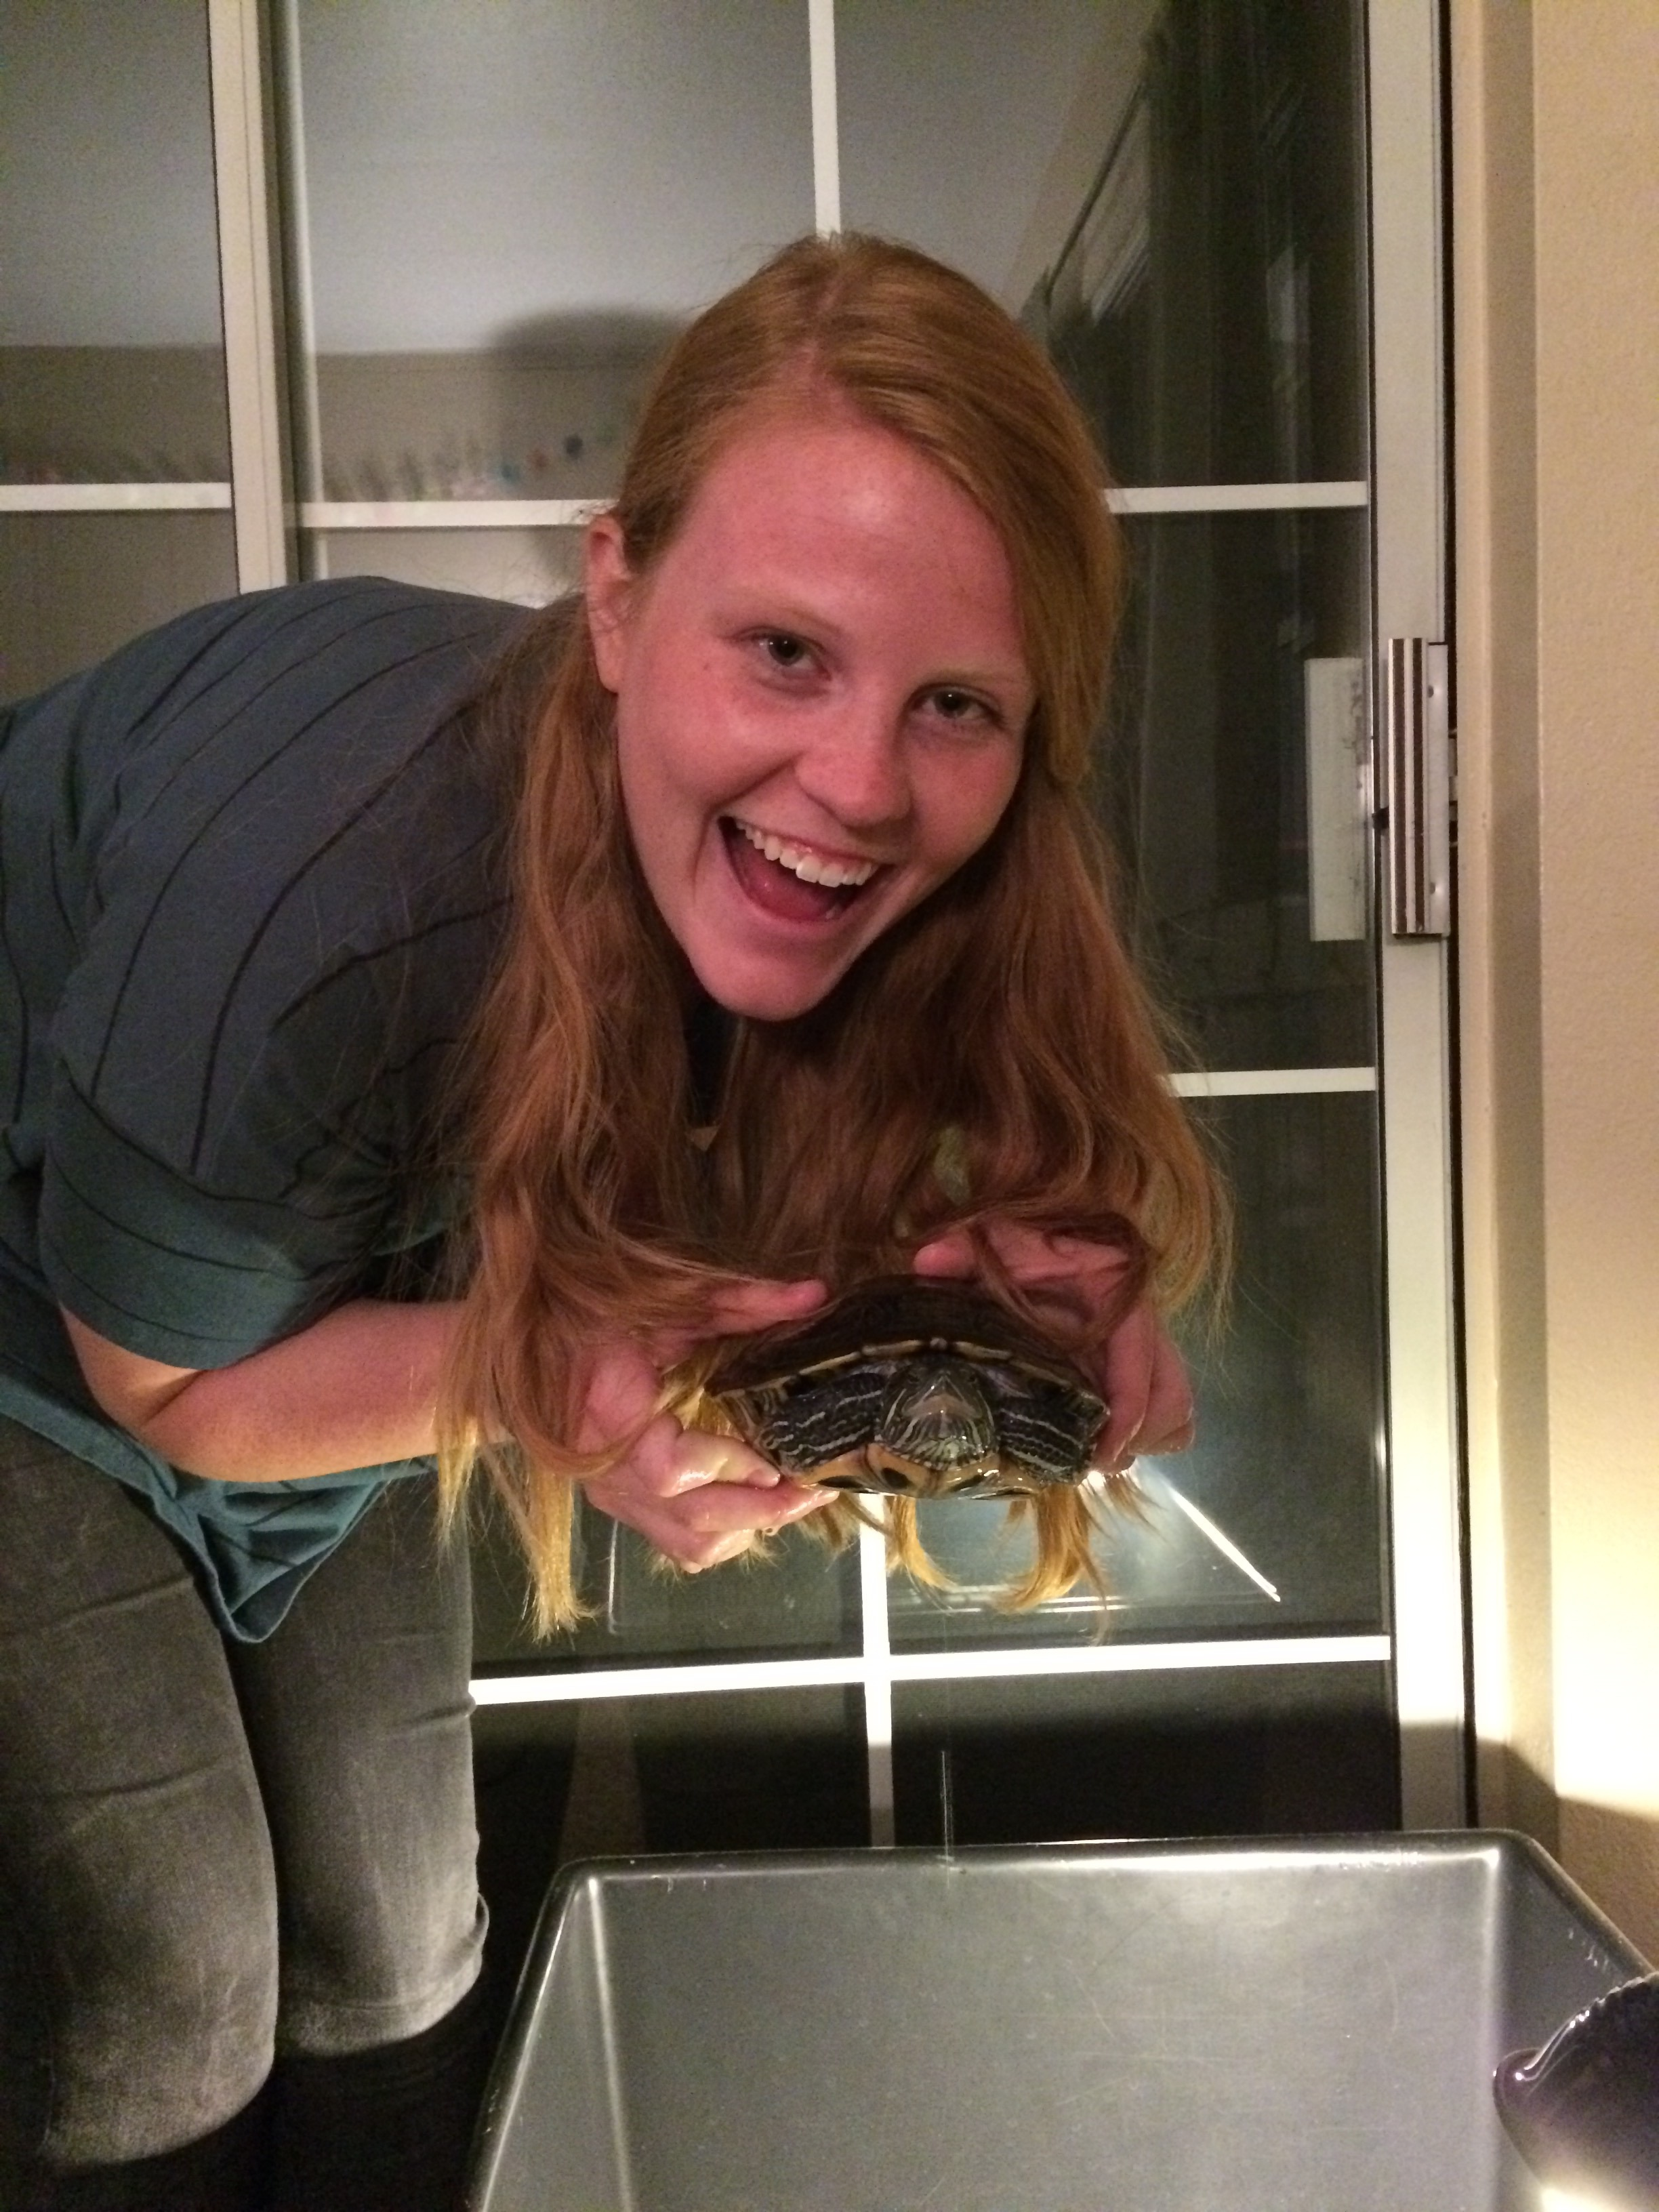 We got a super cute turtle named Percy and we love her very much!